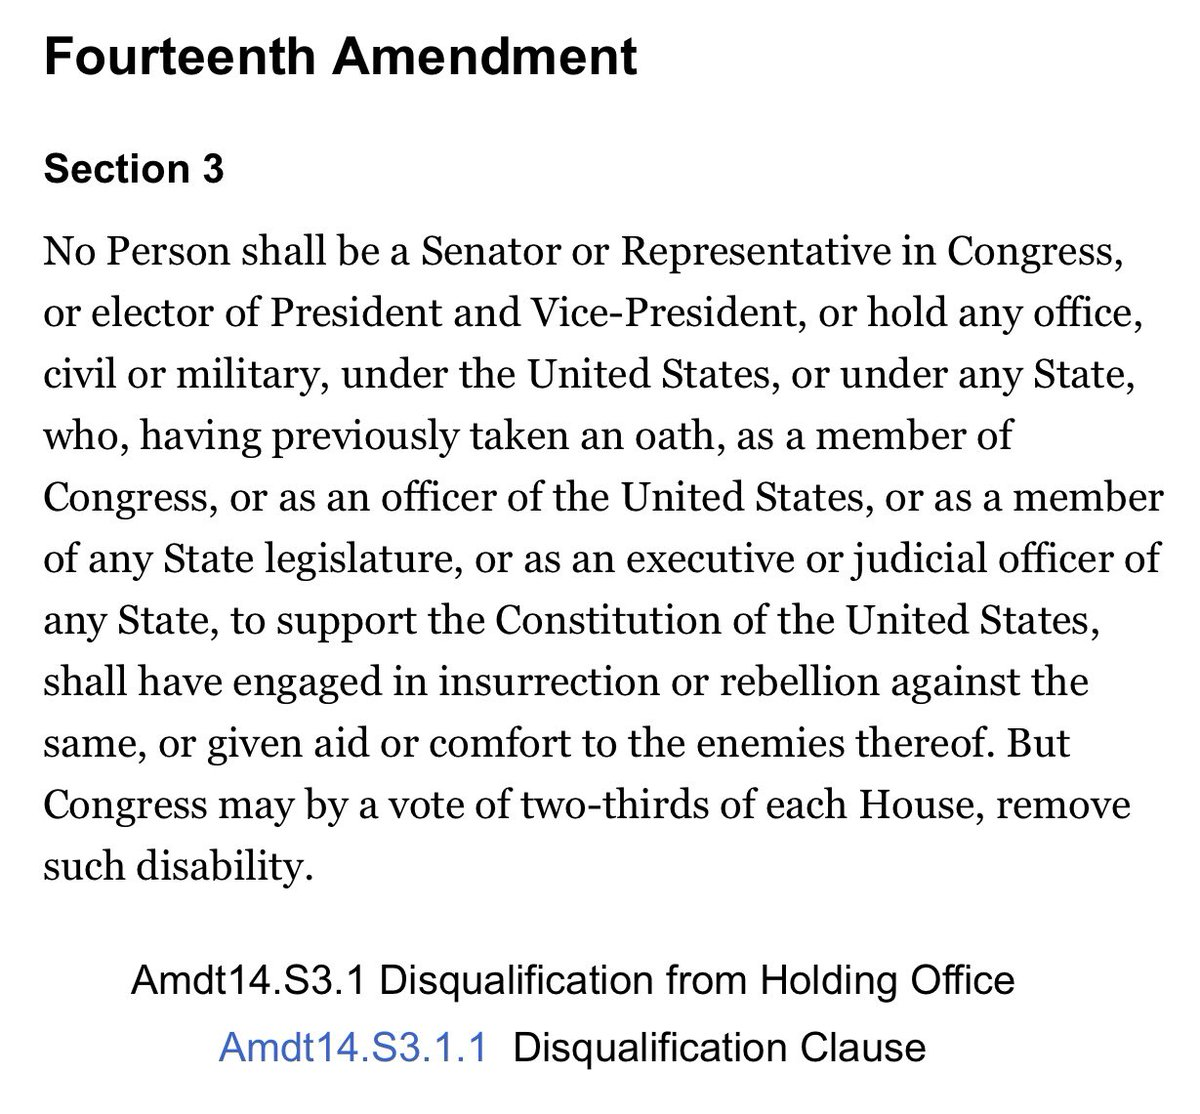 This clause from the 14th Amendment to the Constitution seems very relevant.